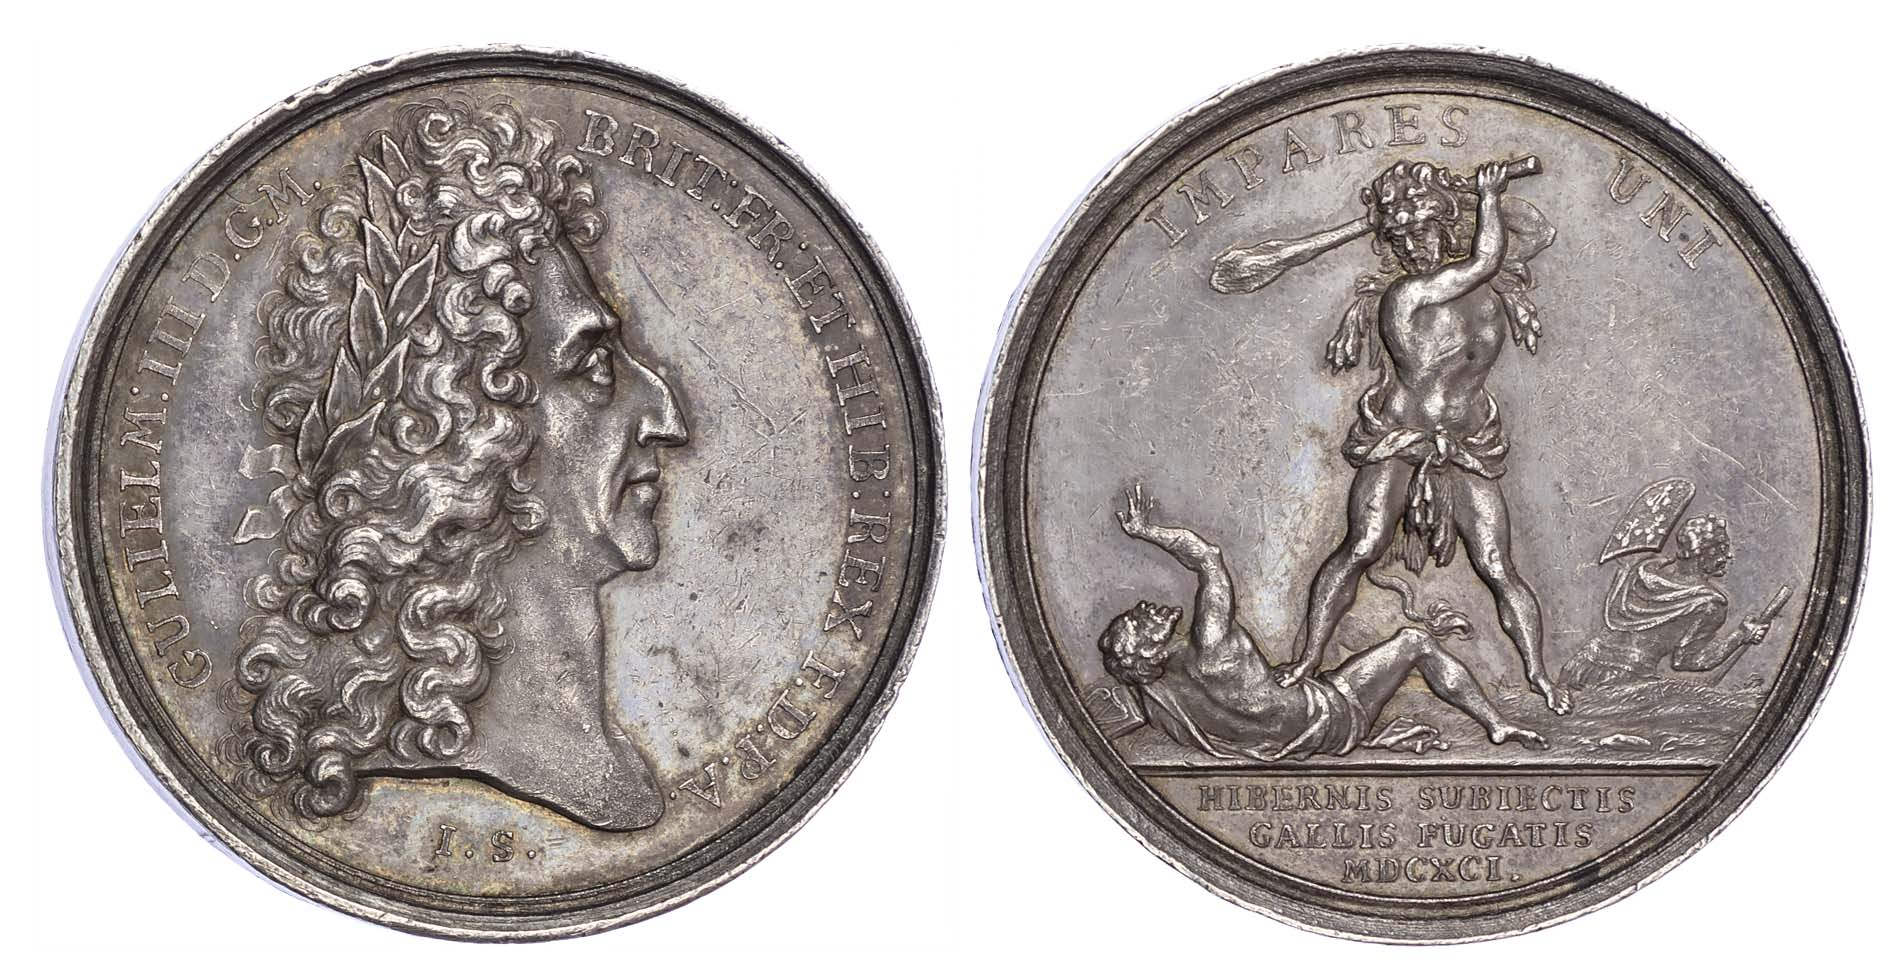 William and Mary (1688-1694), Battle of Aughrim 1691, Silver medal